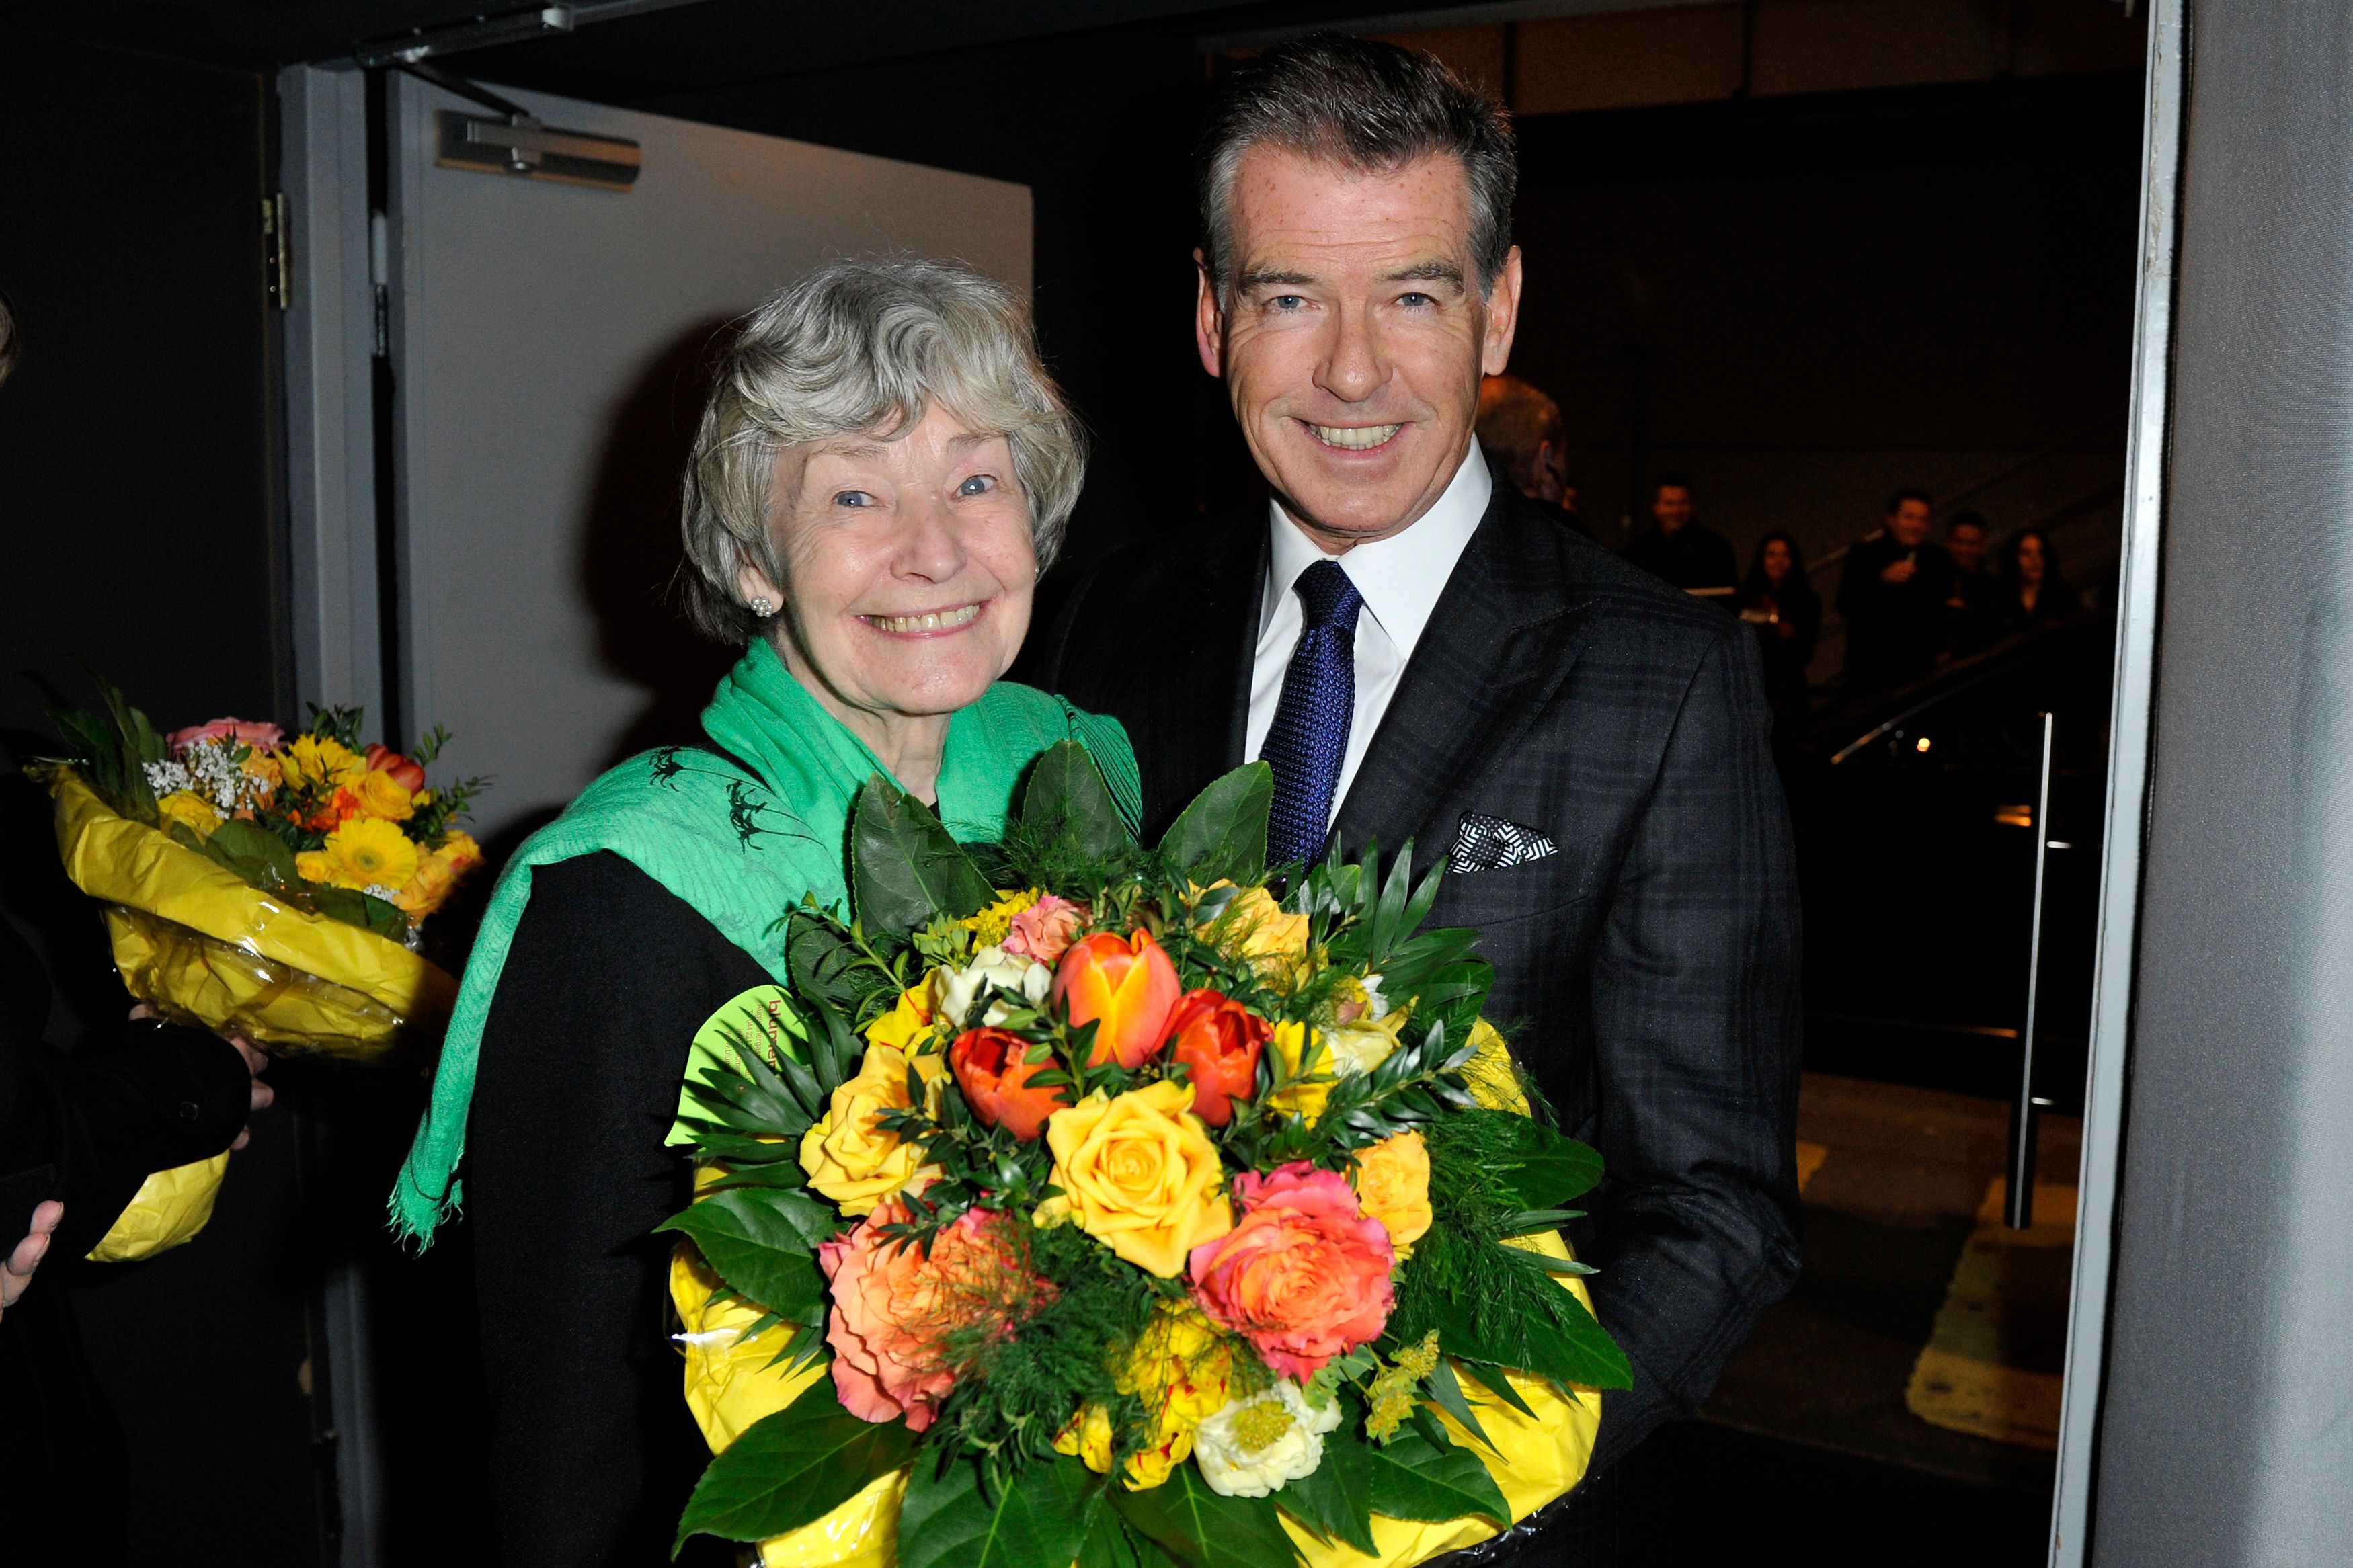 Pierce Brosnan and his mother Mary Carmichael pose after the Zurich Premiere of 'A Long way down' at Kino Corso on February 11, 2014 | Photo: Getty Images